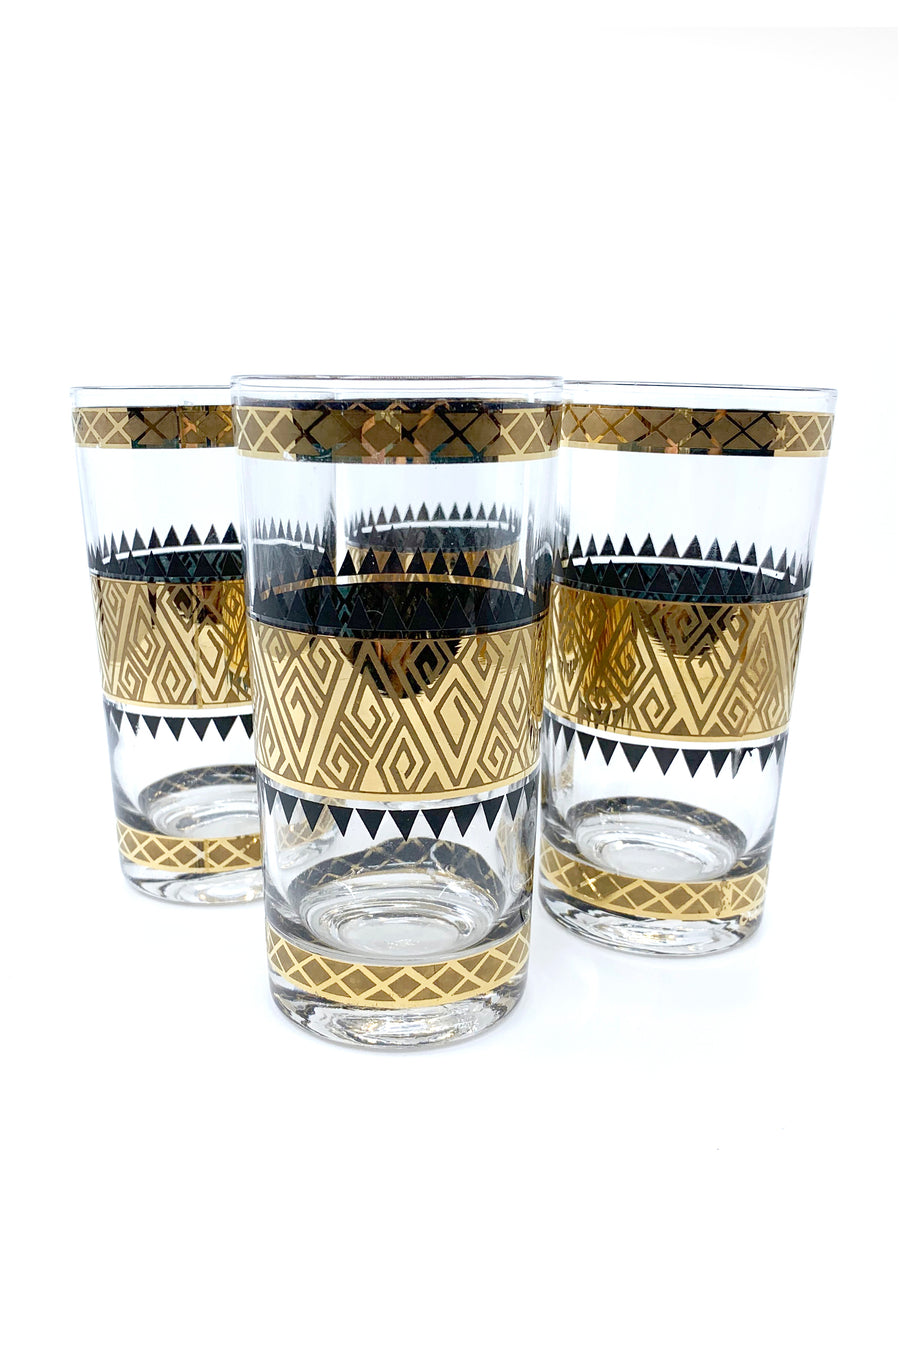 CULVER MID-CENTURY SET OF FOUR GEOMETRIC GLASSES